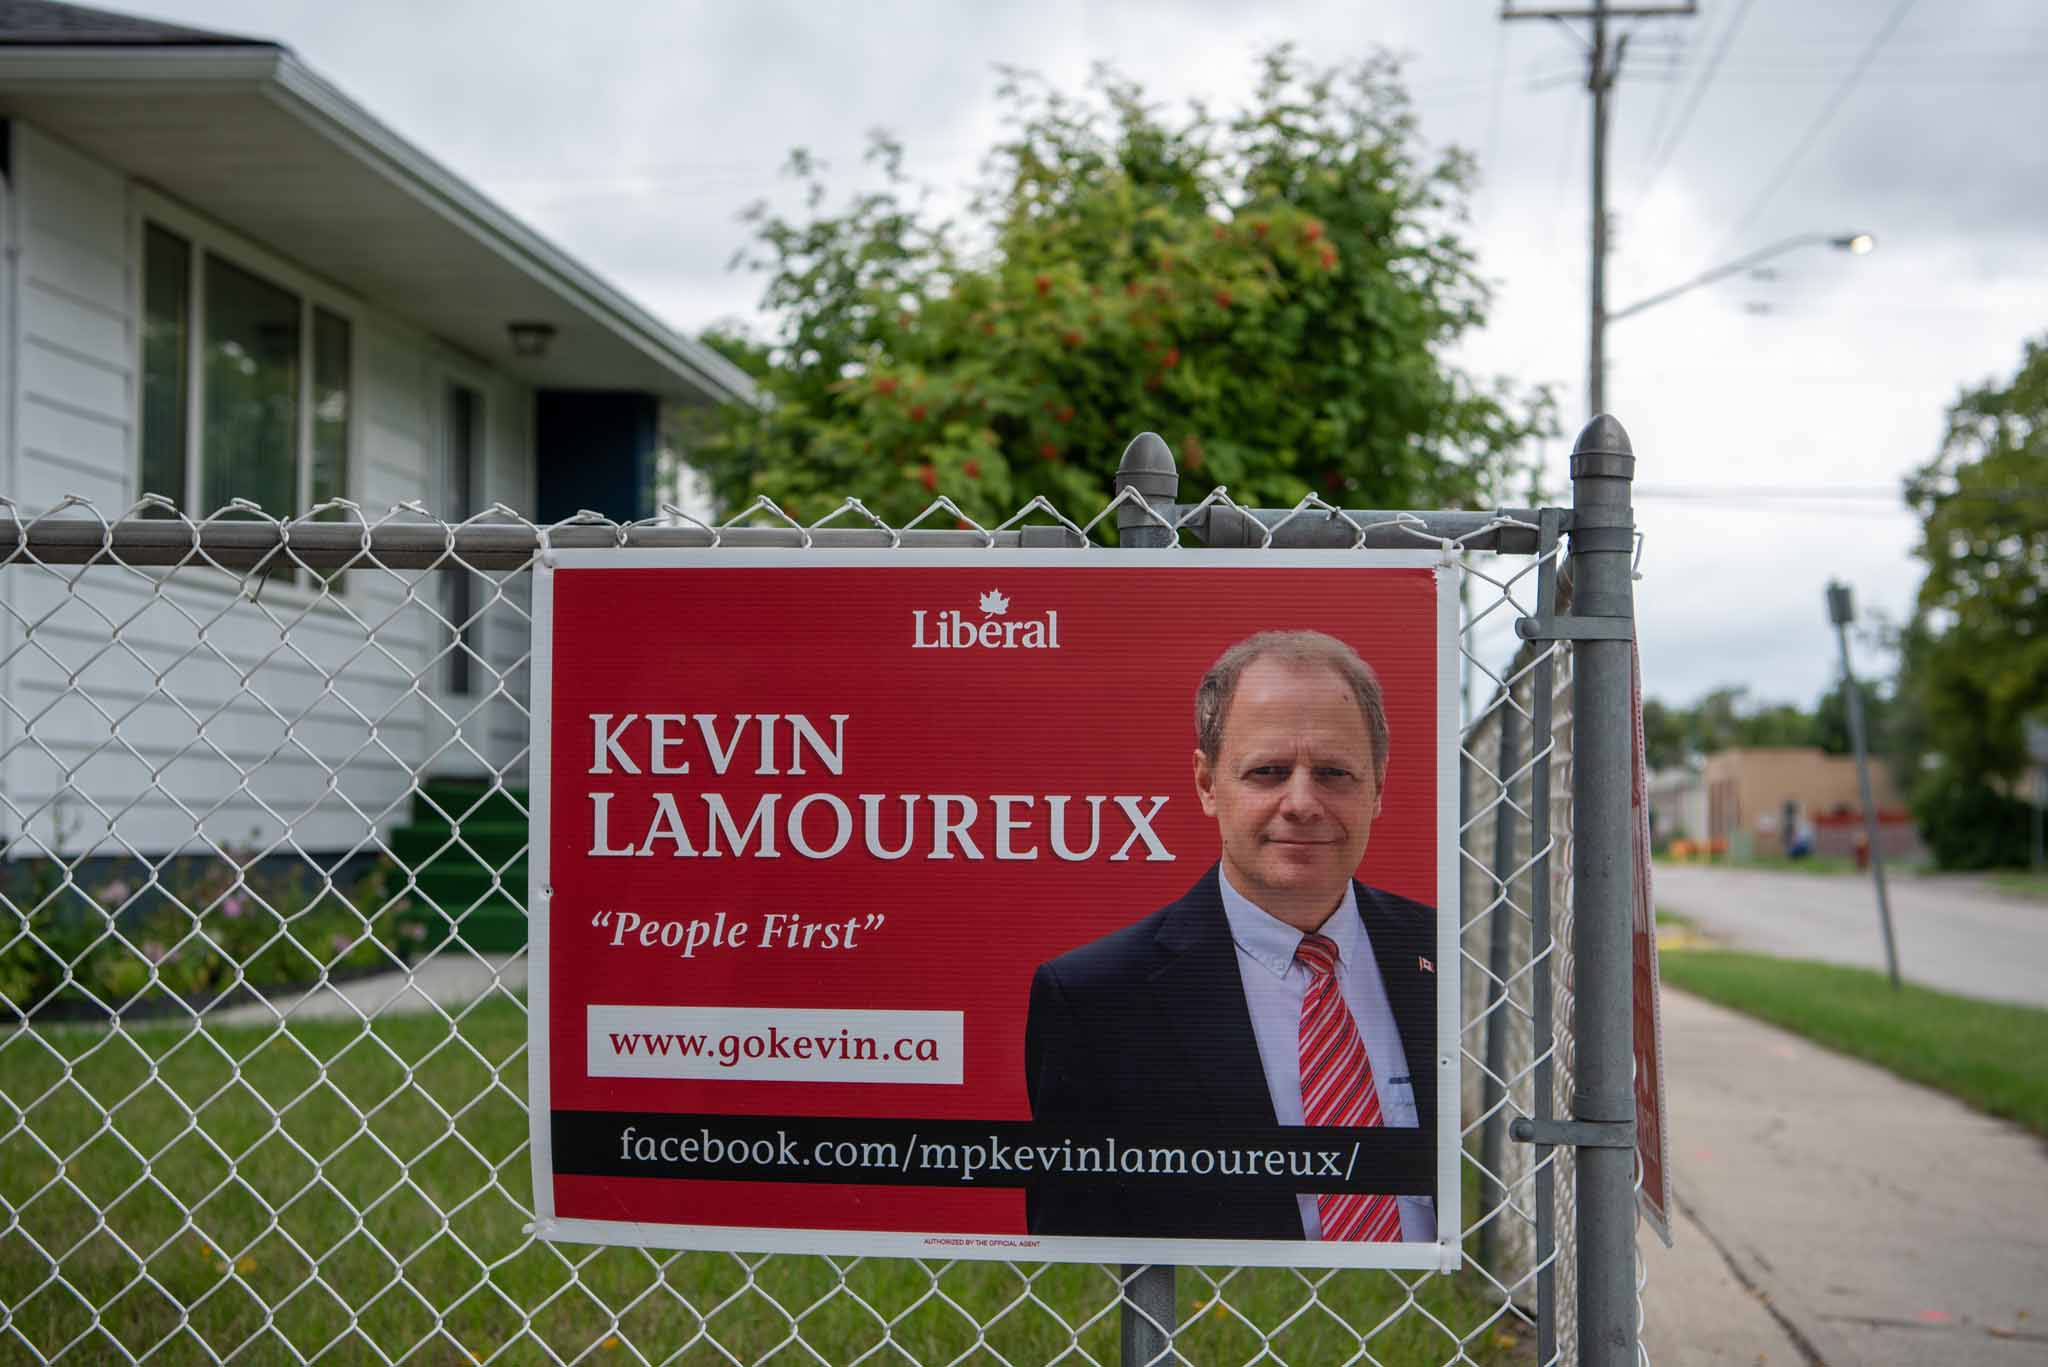 Liberal MP Kevin Lamoureux has held the seat since 2010.